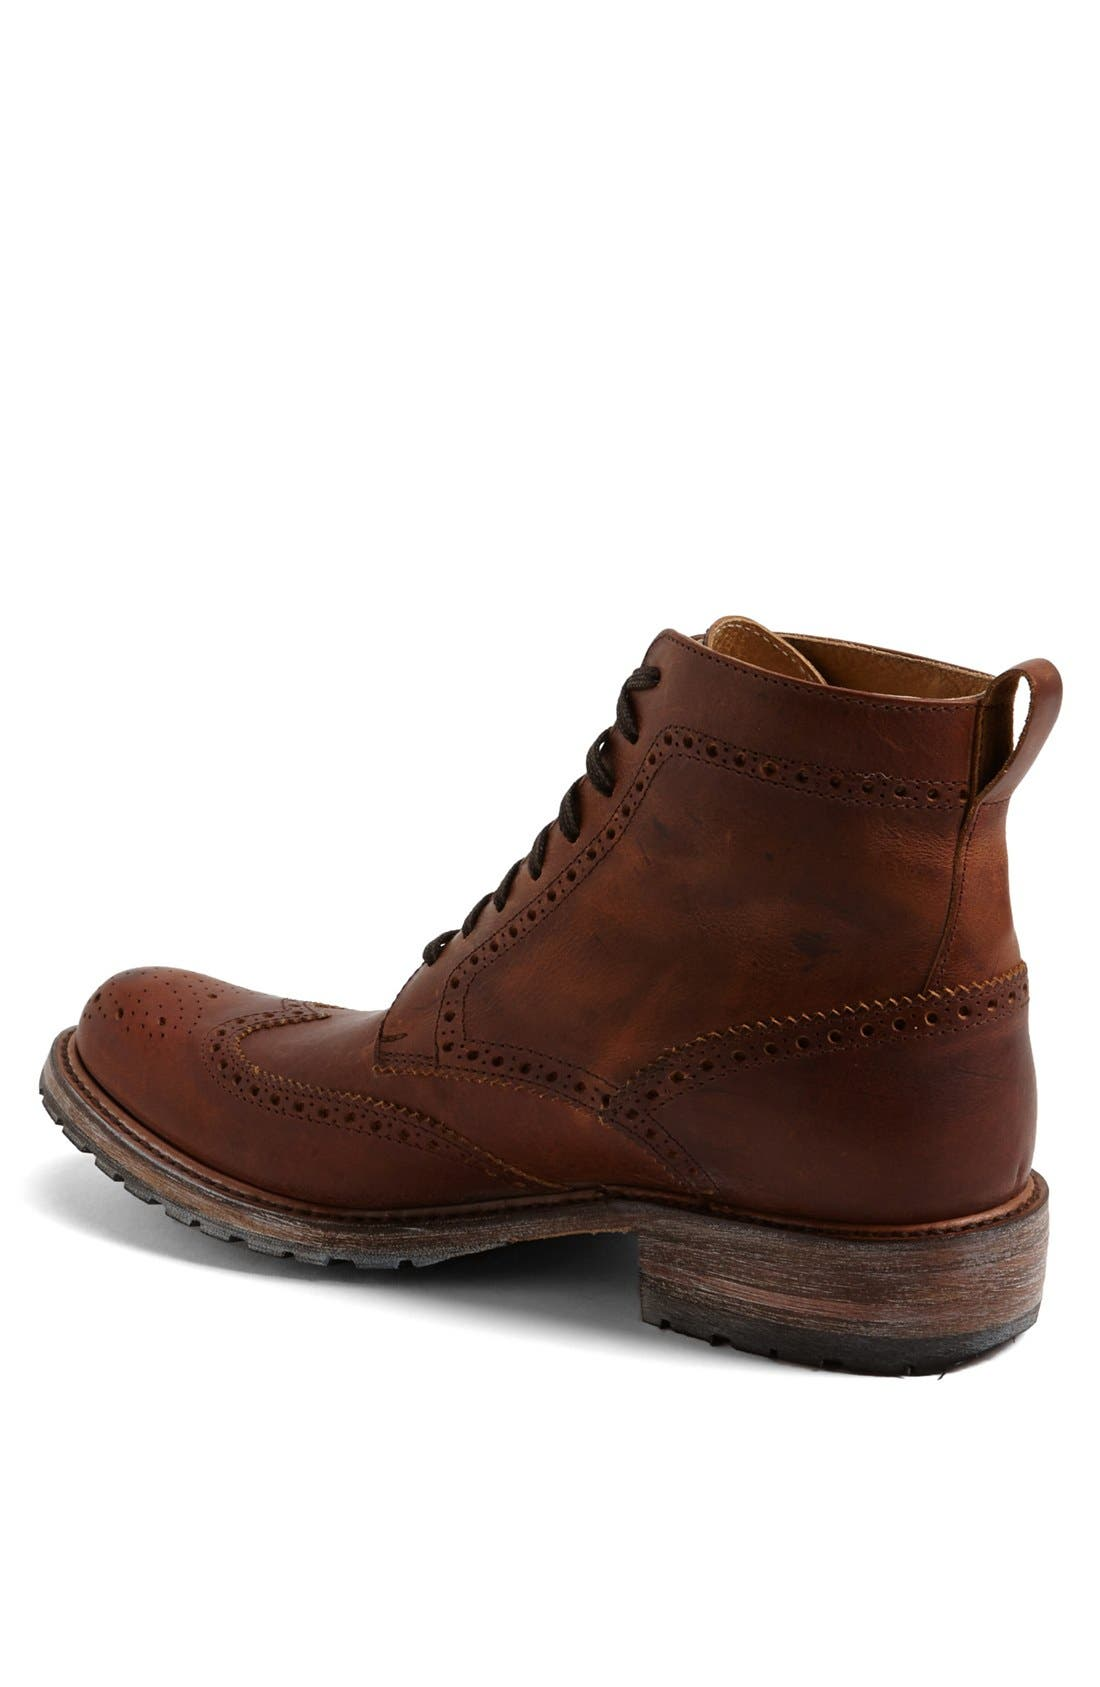 'Skye' Wingtip Boot,                             Alternate thumbnail 2, color,                             Tan